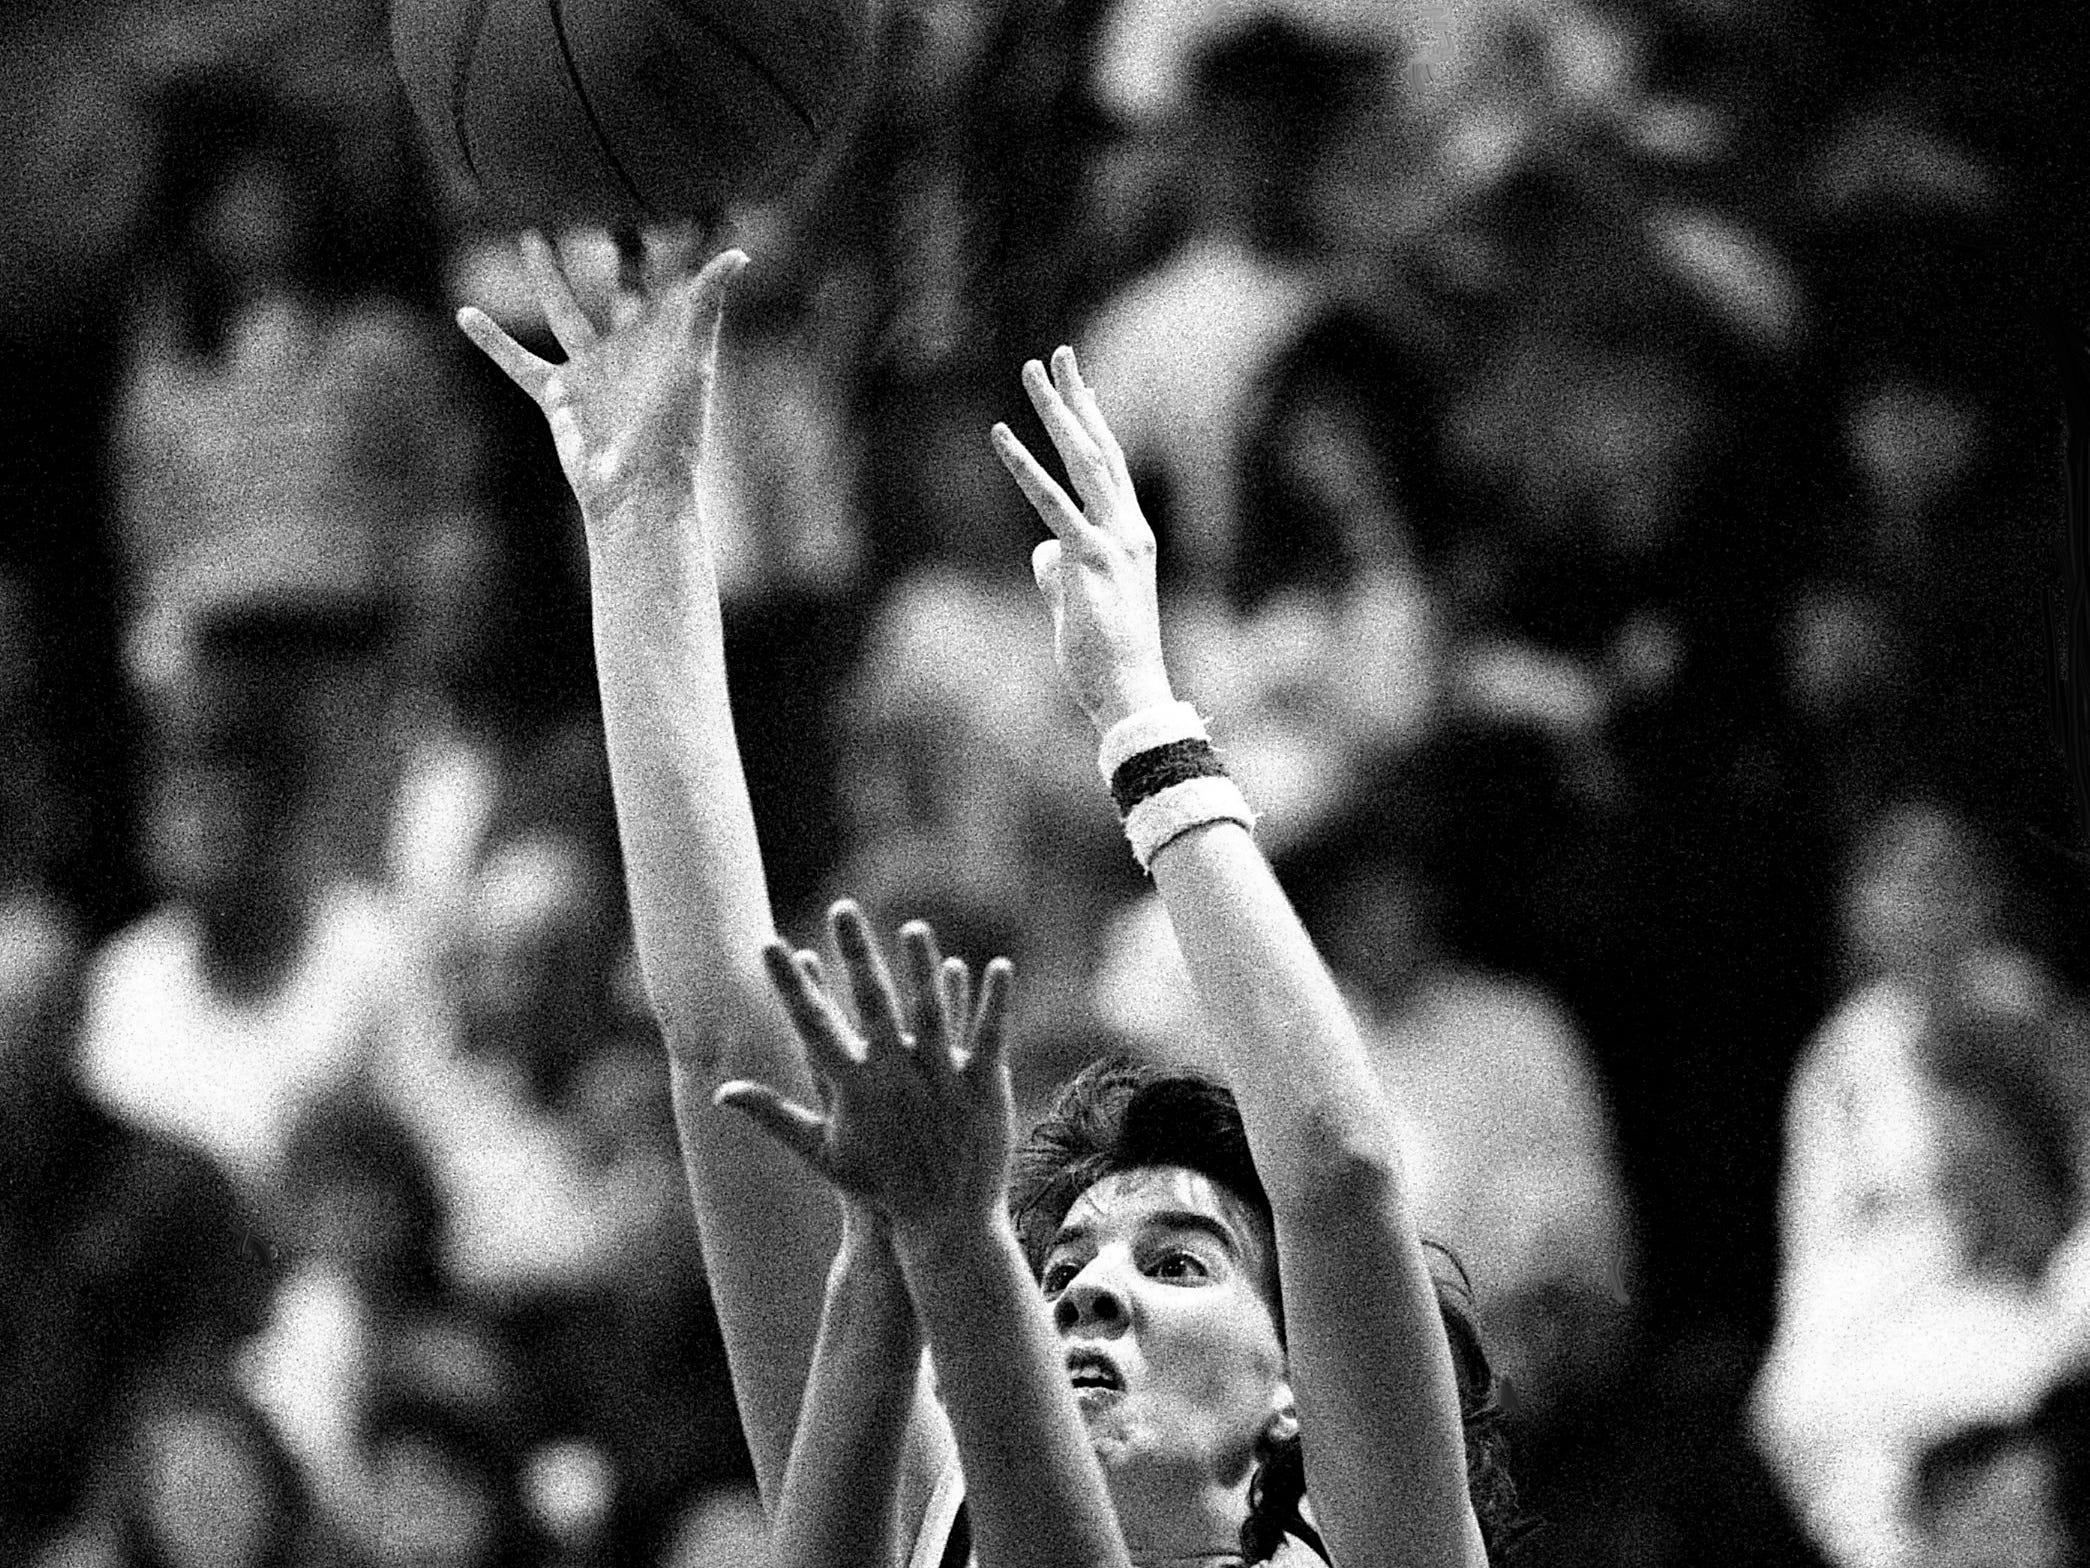 Goodpasture High's Becky Fitzgerald (51) gets off a shot despite the defense of Cheatham County High's Kim Chandler, left, and Angel Allen. Fitzgerald had a game-high 34 points, but Cheatham County won the TSSAA Region 6-AA championship game 64-63 in Goodpasture gym March 2, 1989.